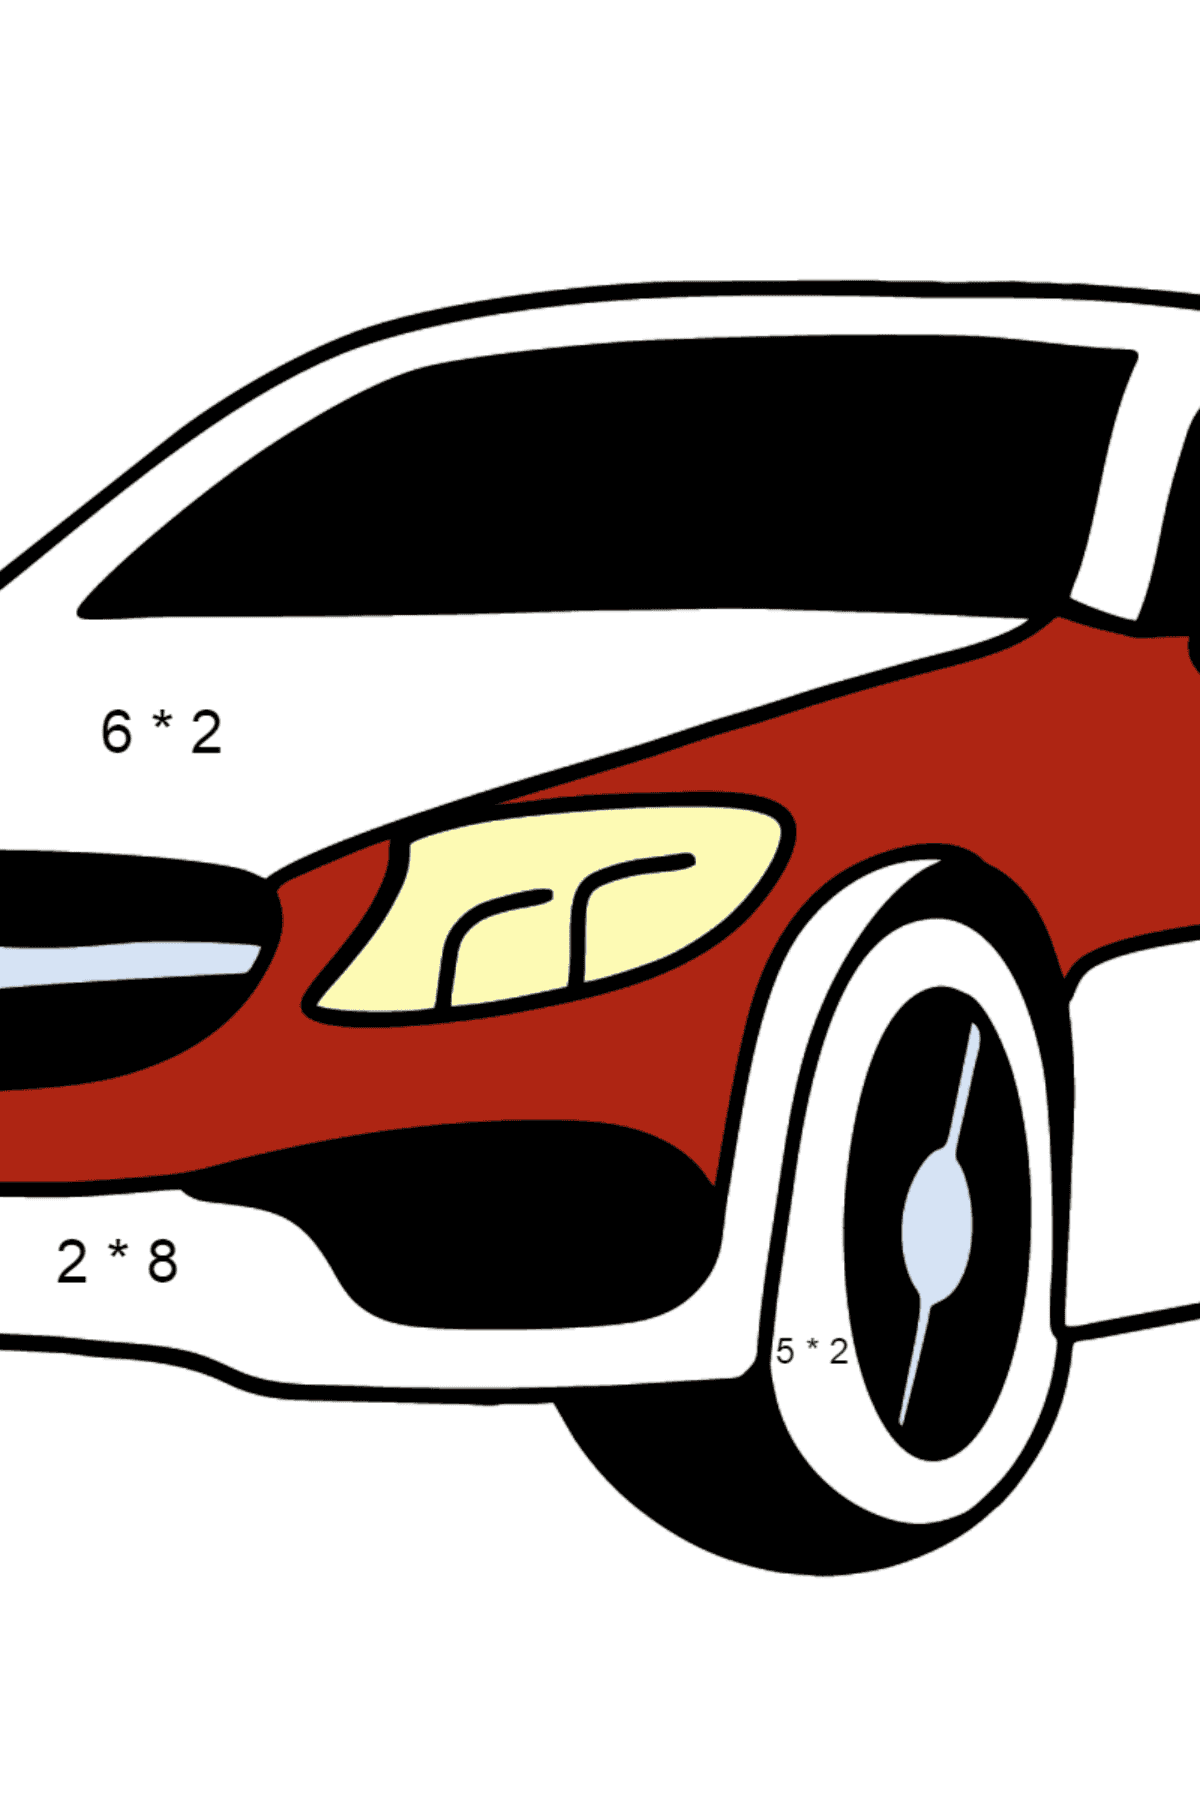 Mercedes C63 AMG car coloring page - Math Coloring - Multiplication for Kids